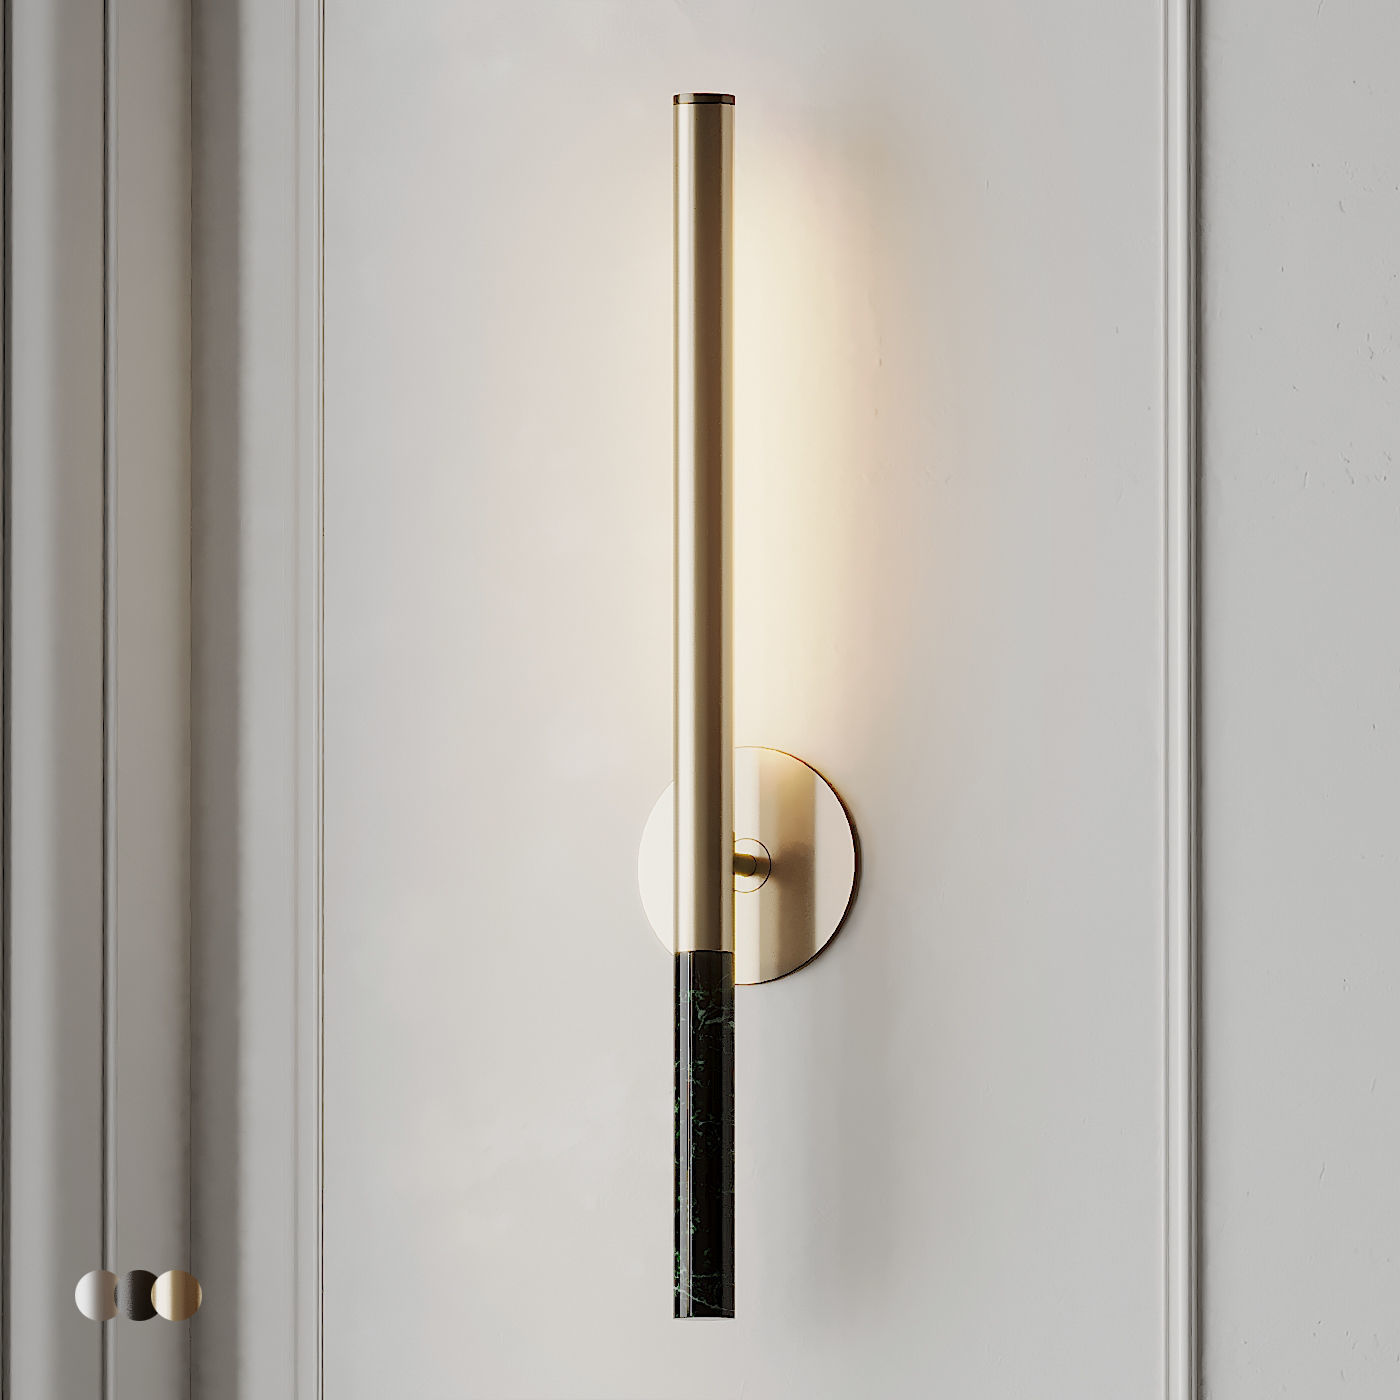 Formation Wall Sconce by Jonathan Ben-Tovim